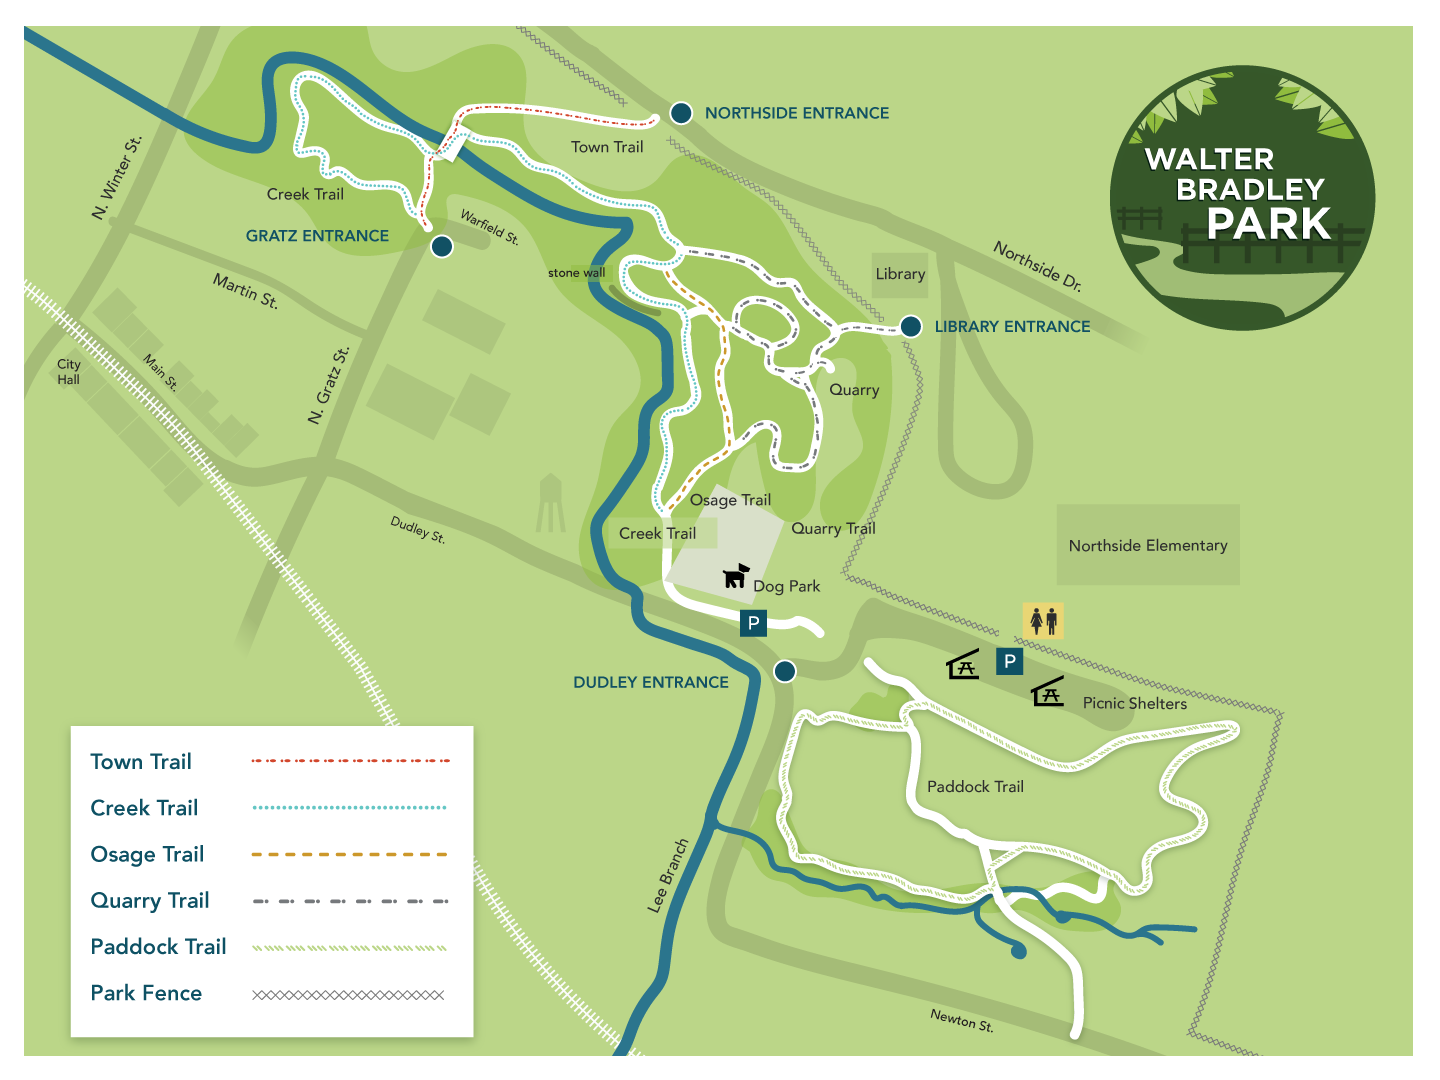 map of the park showing trails and parking